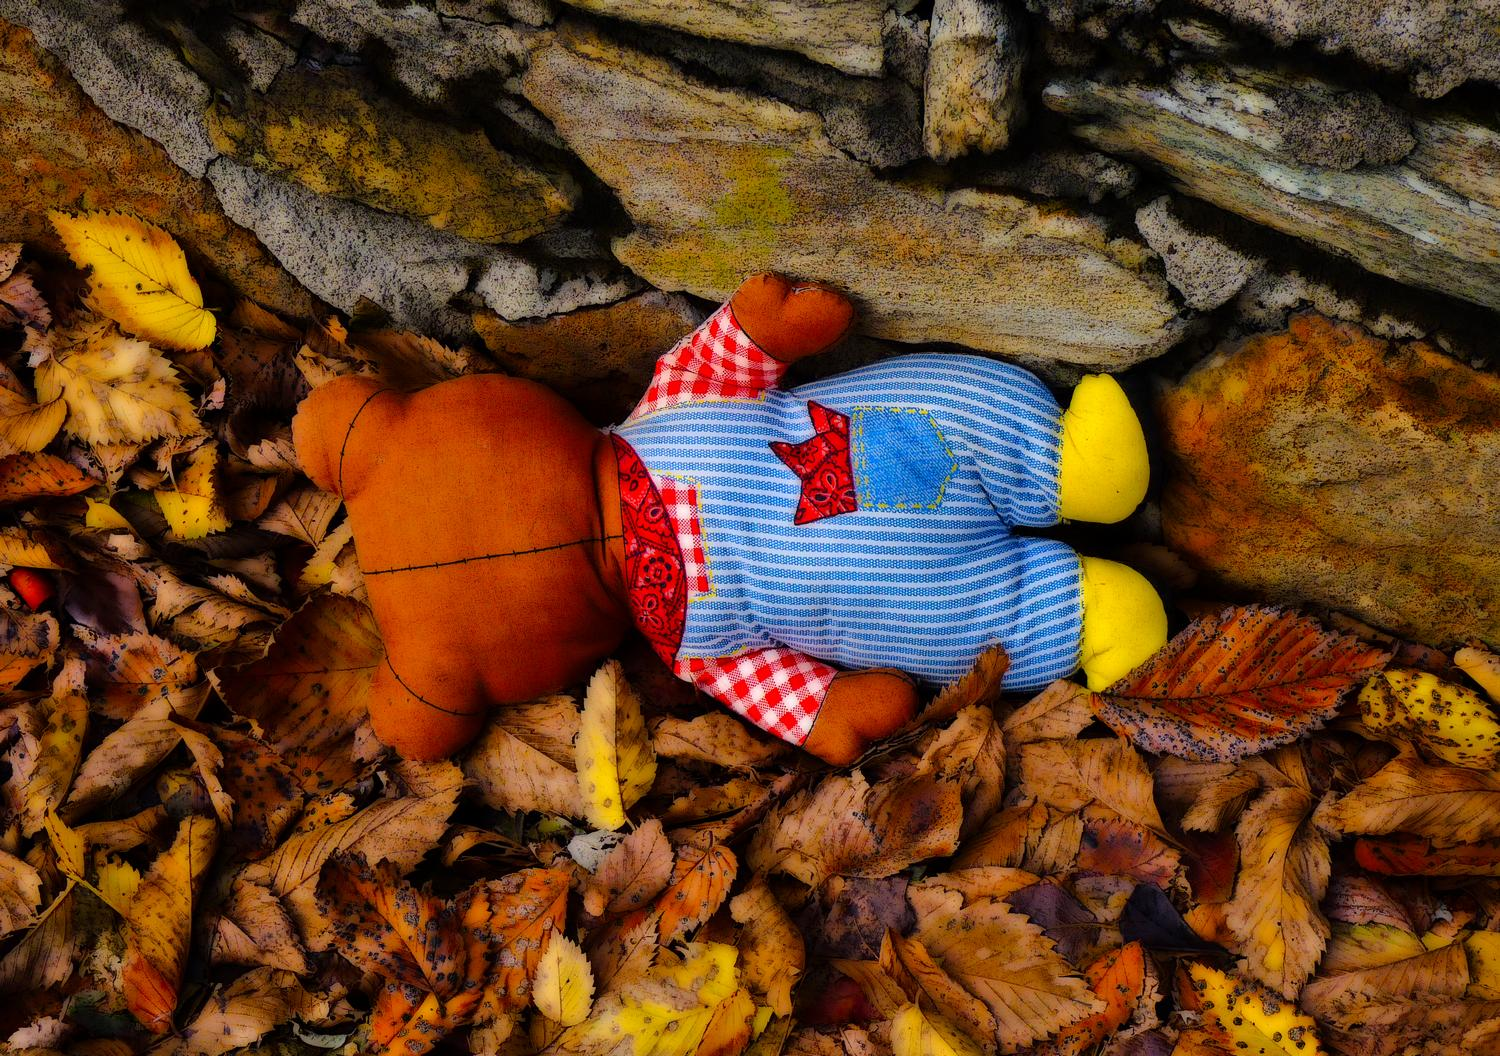 stuffed bear in the leaves from the back  - Warrenton, Virginia-  Panasonic DMC-FZ35 - We found Mr. Bear in a pile of leaves along the road. - Tony Karp, design, art, photography, techno-impressionist, techno-impressionism, aerial photography , drone , drones , dji , mavic pro , video , 3D printing - Books -